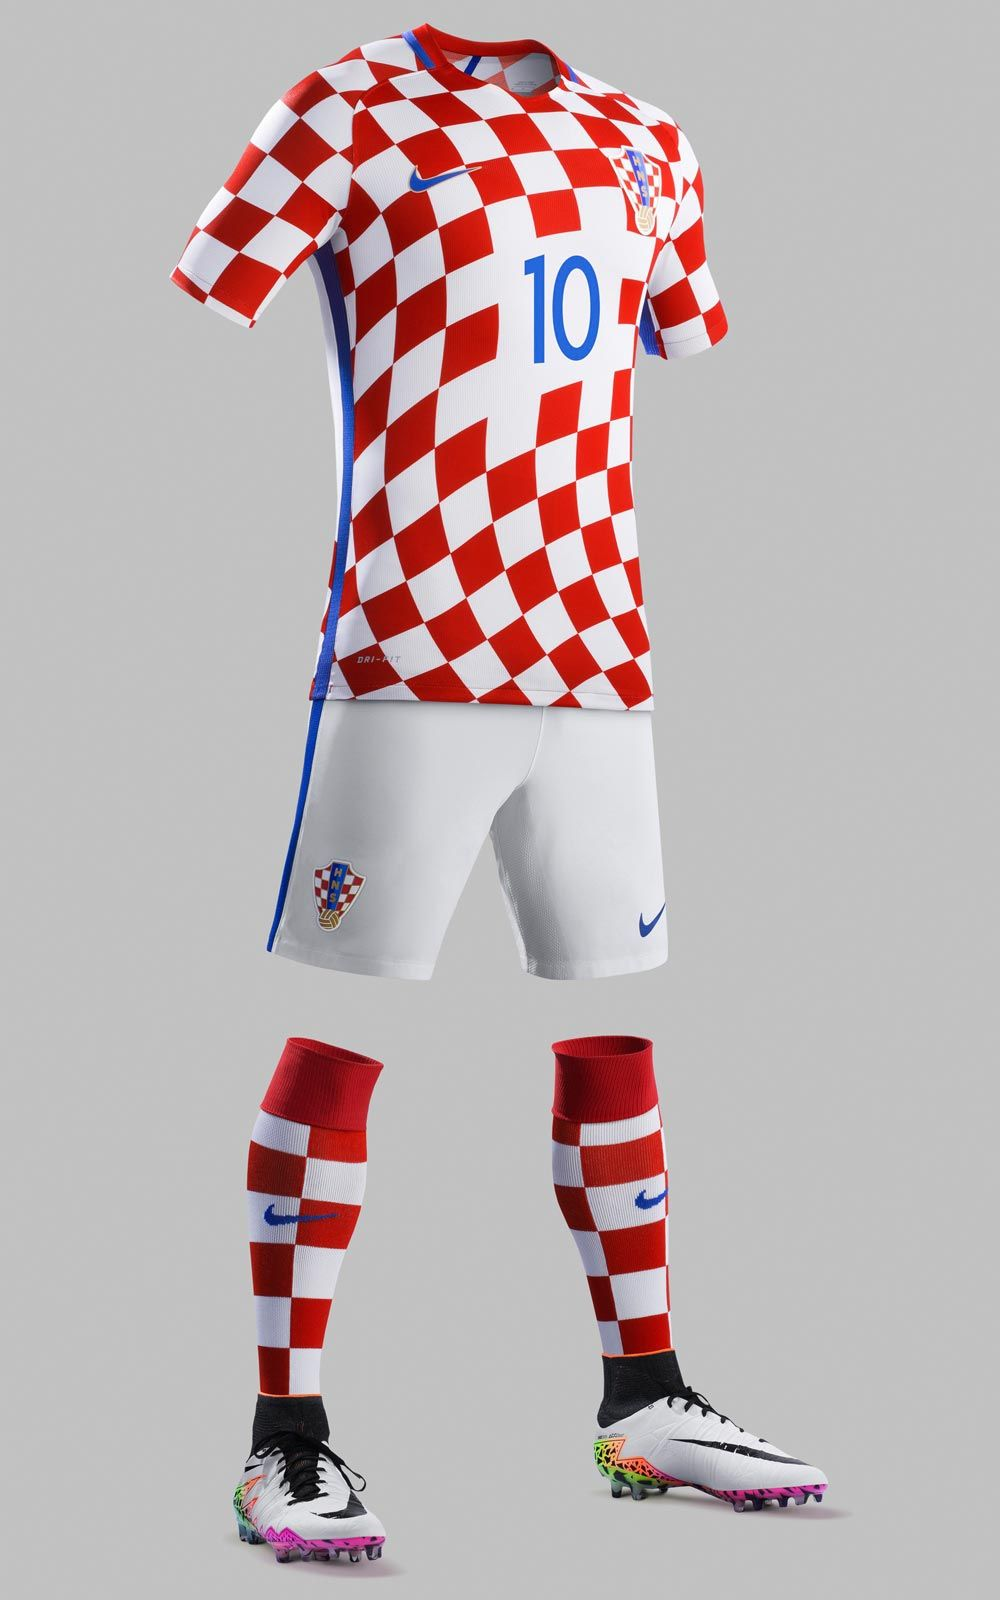 db5723e93 At last we see Croatia in their trademark checkerboard home kit!